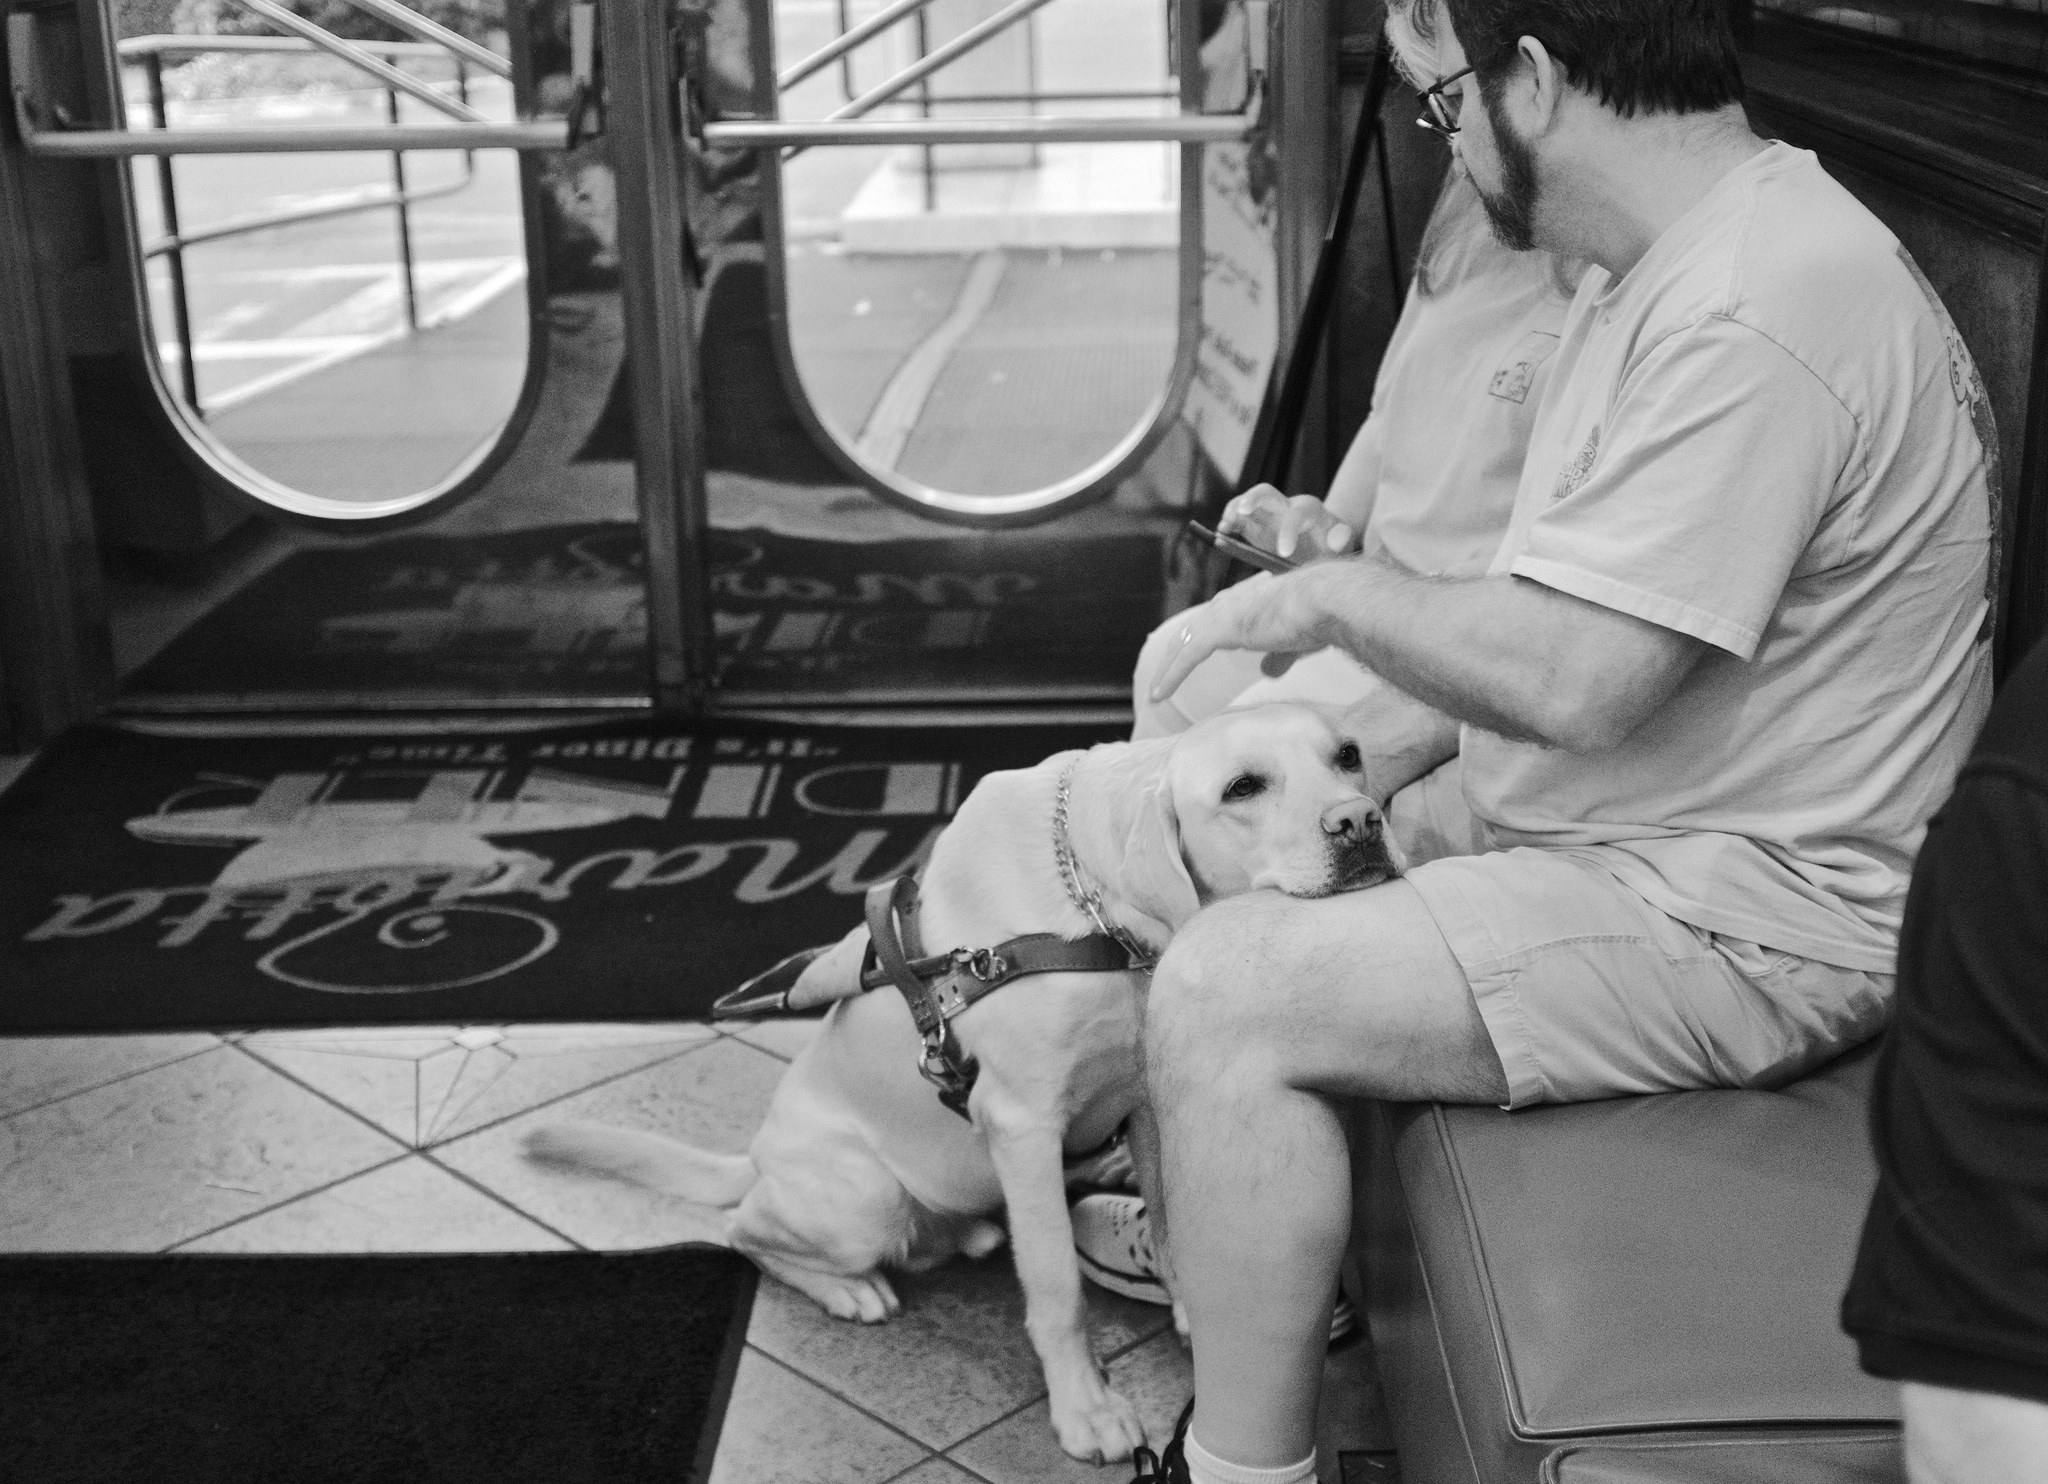 """' Companion Dog' comforts owner "" by  Tom Driggers  is licensed under  CC BY 2.0"